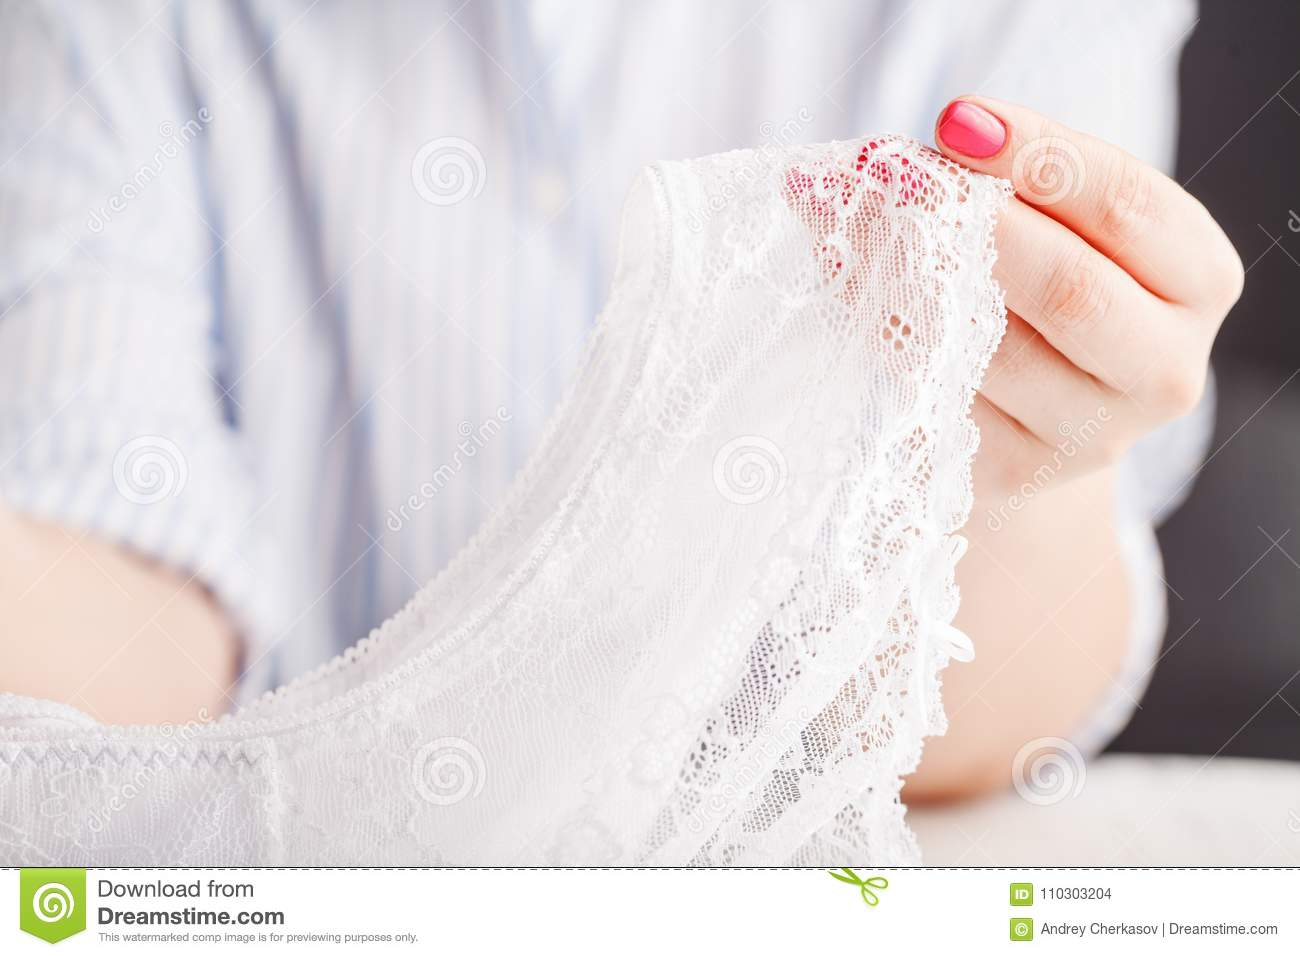 Female erotic fashionable lace panties or lingerie on wooden background with hands